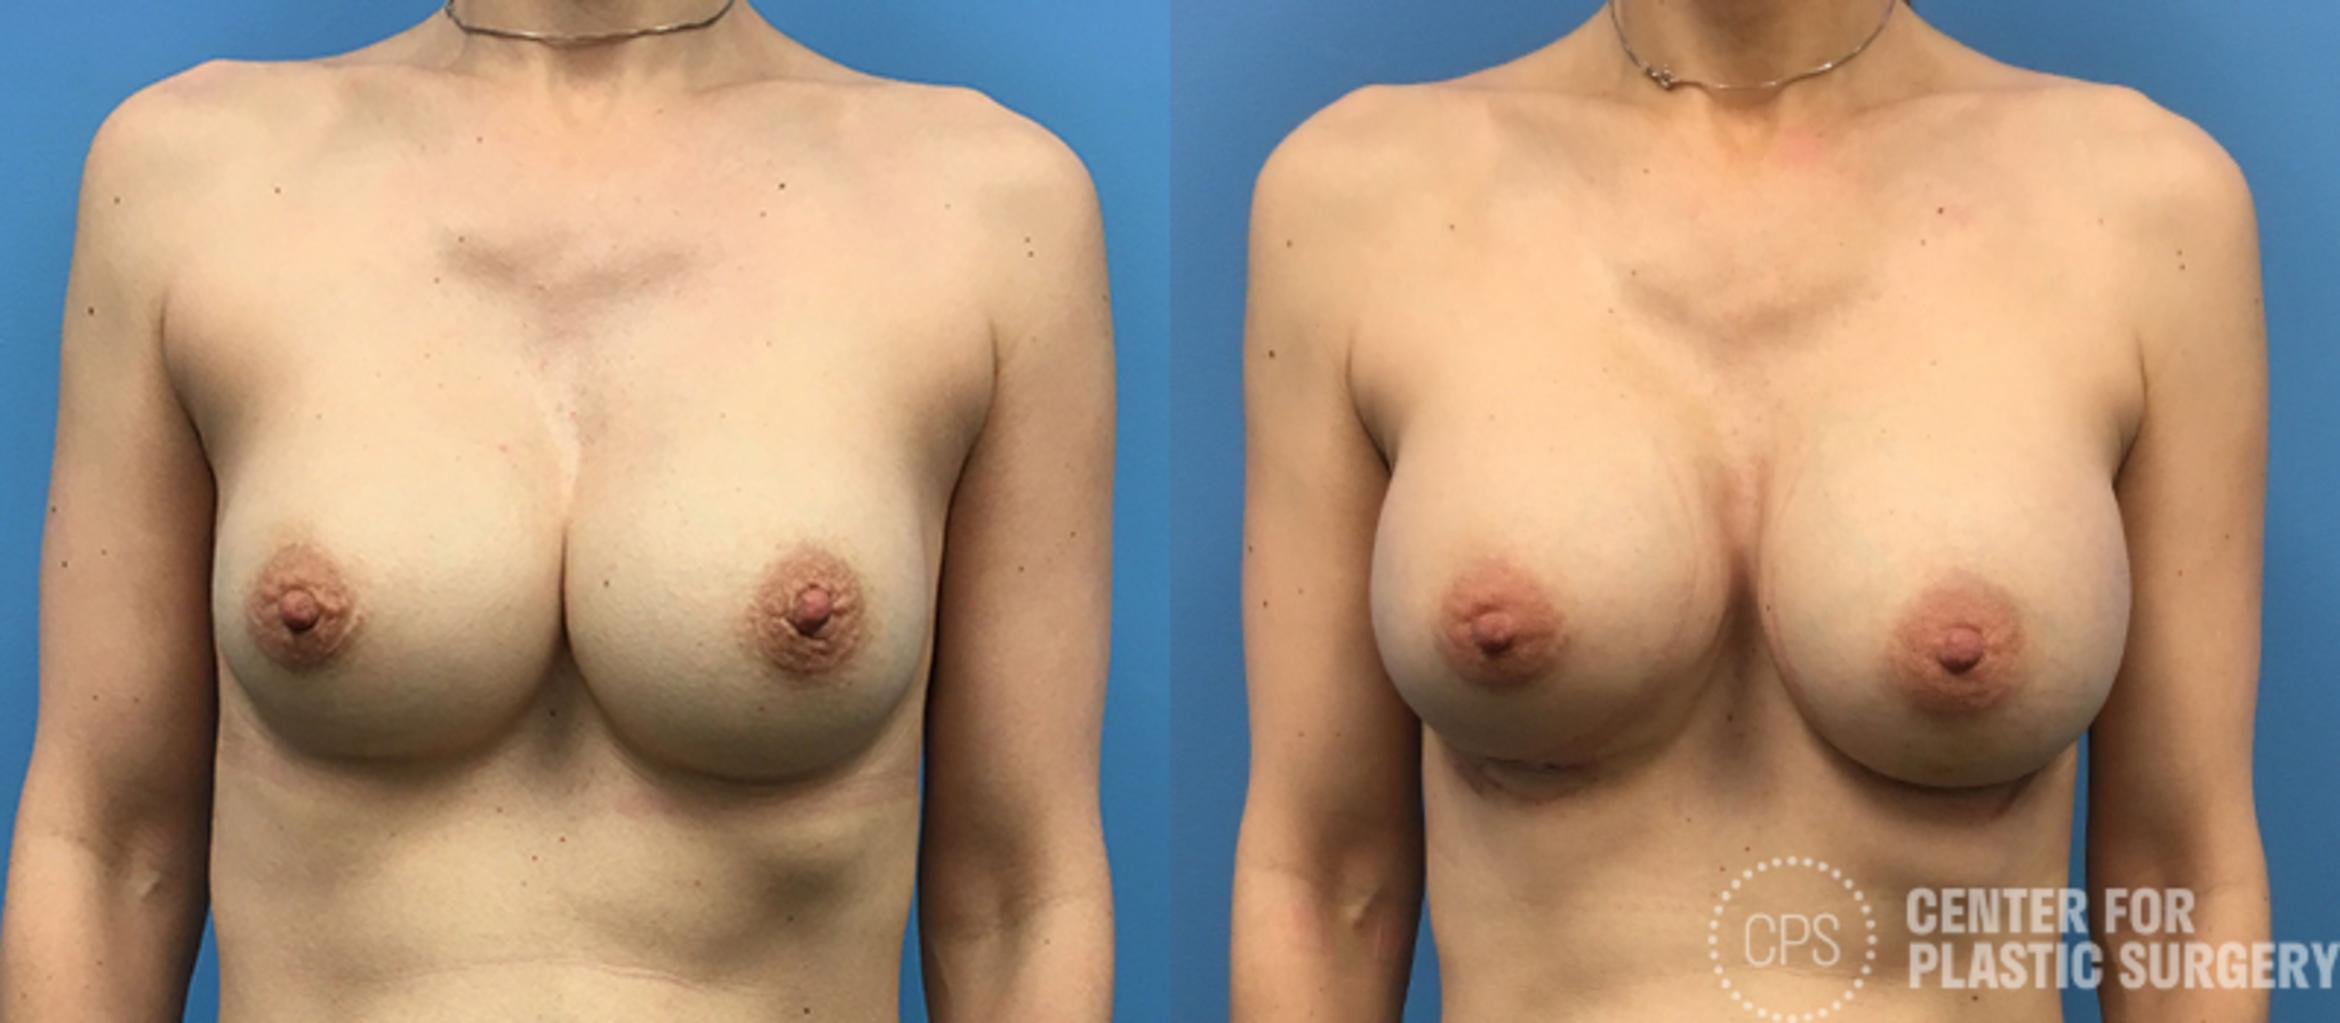 Breast Augmentation Case 117 Before & After Front | Washington DC, Bethesda & Chevy Chase, Washington D.C. Metropolitan Area | Center for Plastic Surgery